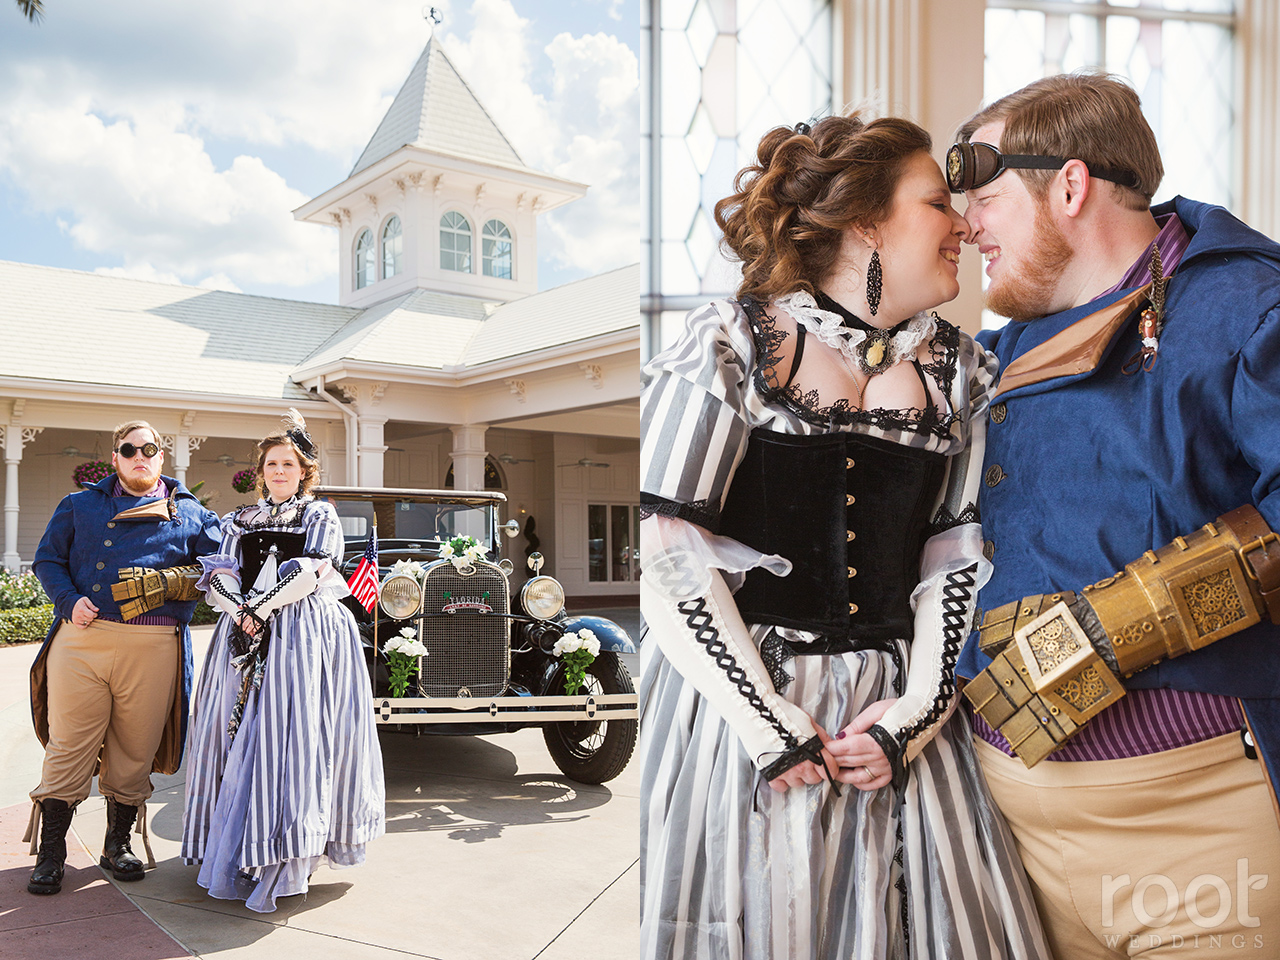 steampunk-cosplay-wedding-photographers-orlando-16